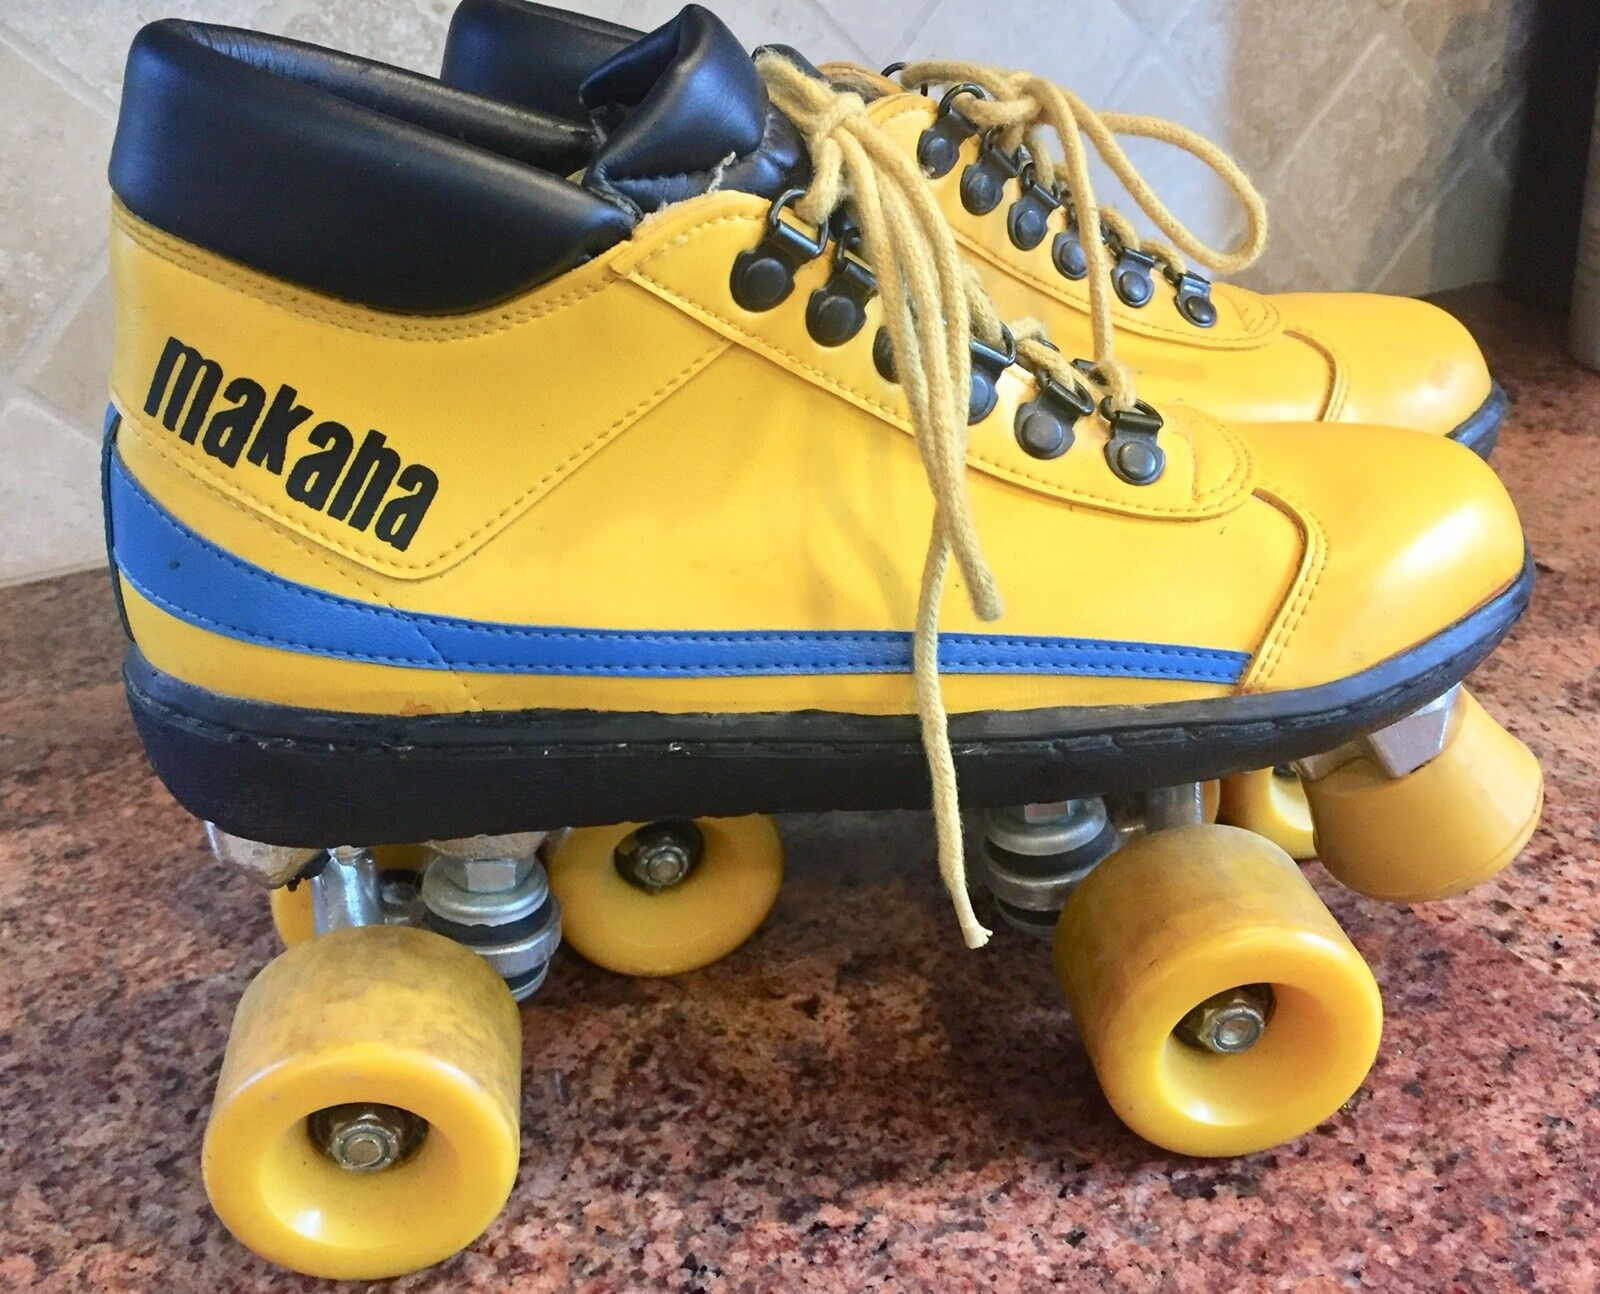 MAKAHA Roller S s Rare Vintage 1970 Mens  Sz 6 shoes Roller Derby Yellow MINT  official authorization